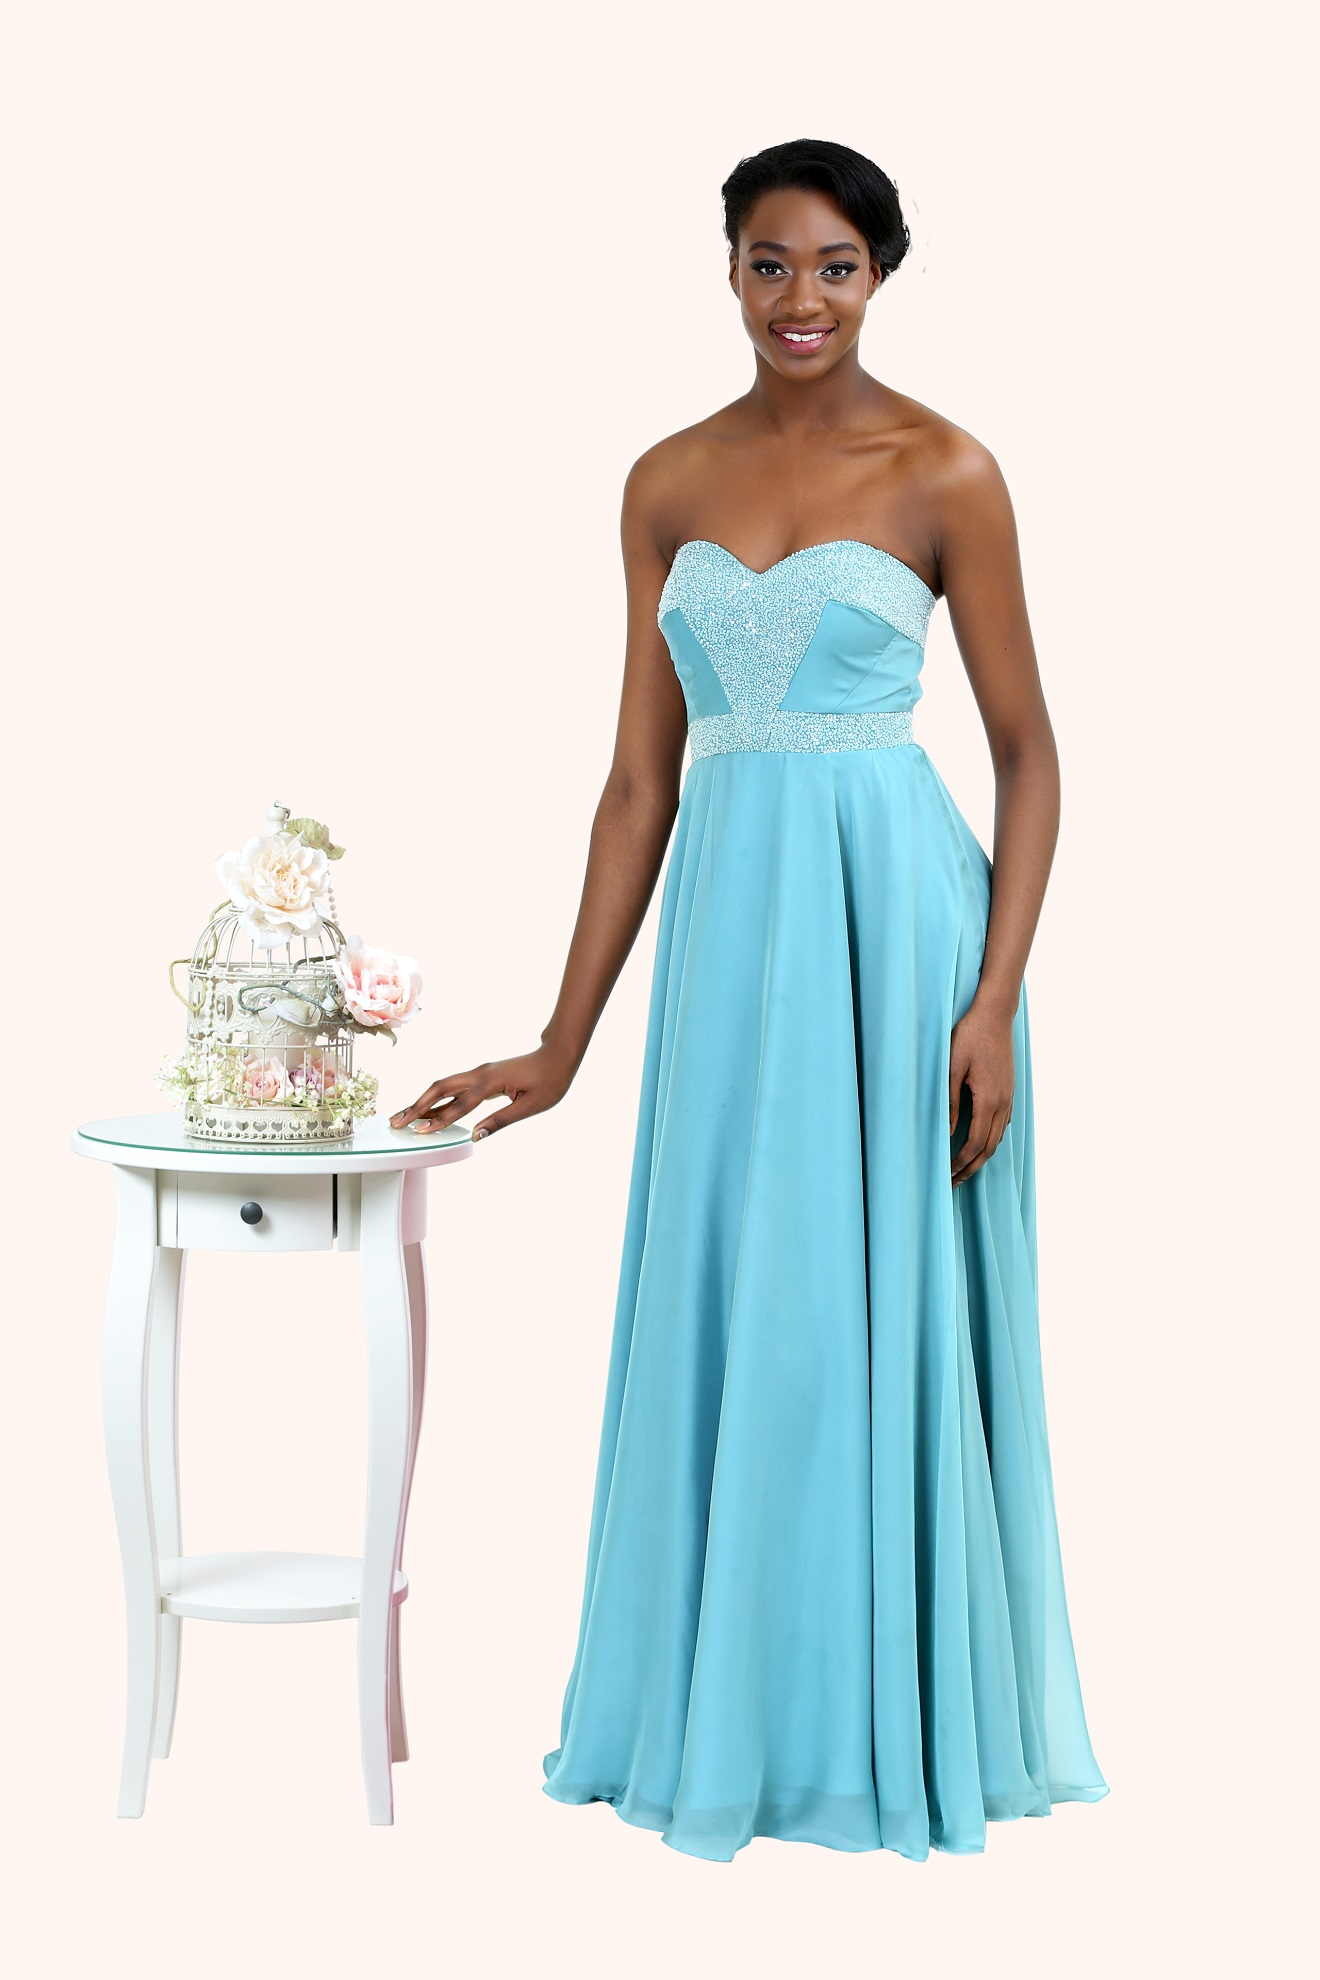 Funky Claires Prom Dresses Vignette - All Wedding Dresses ...